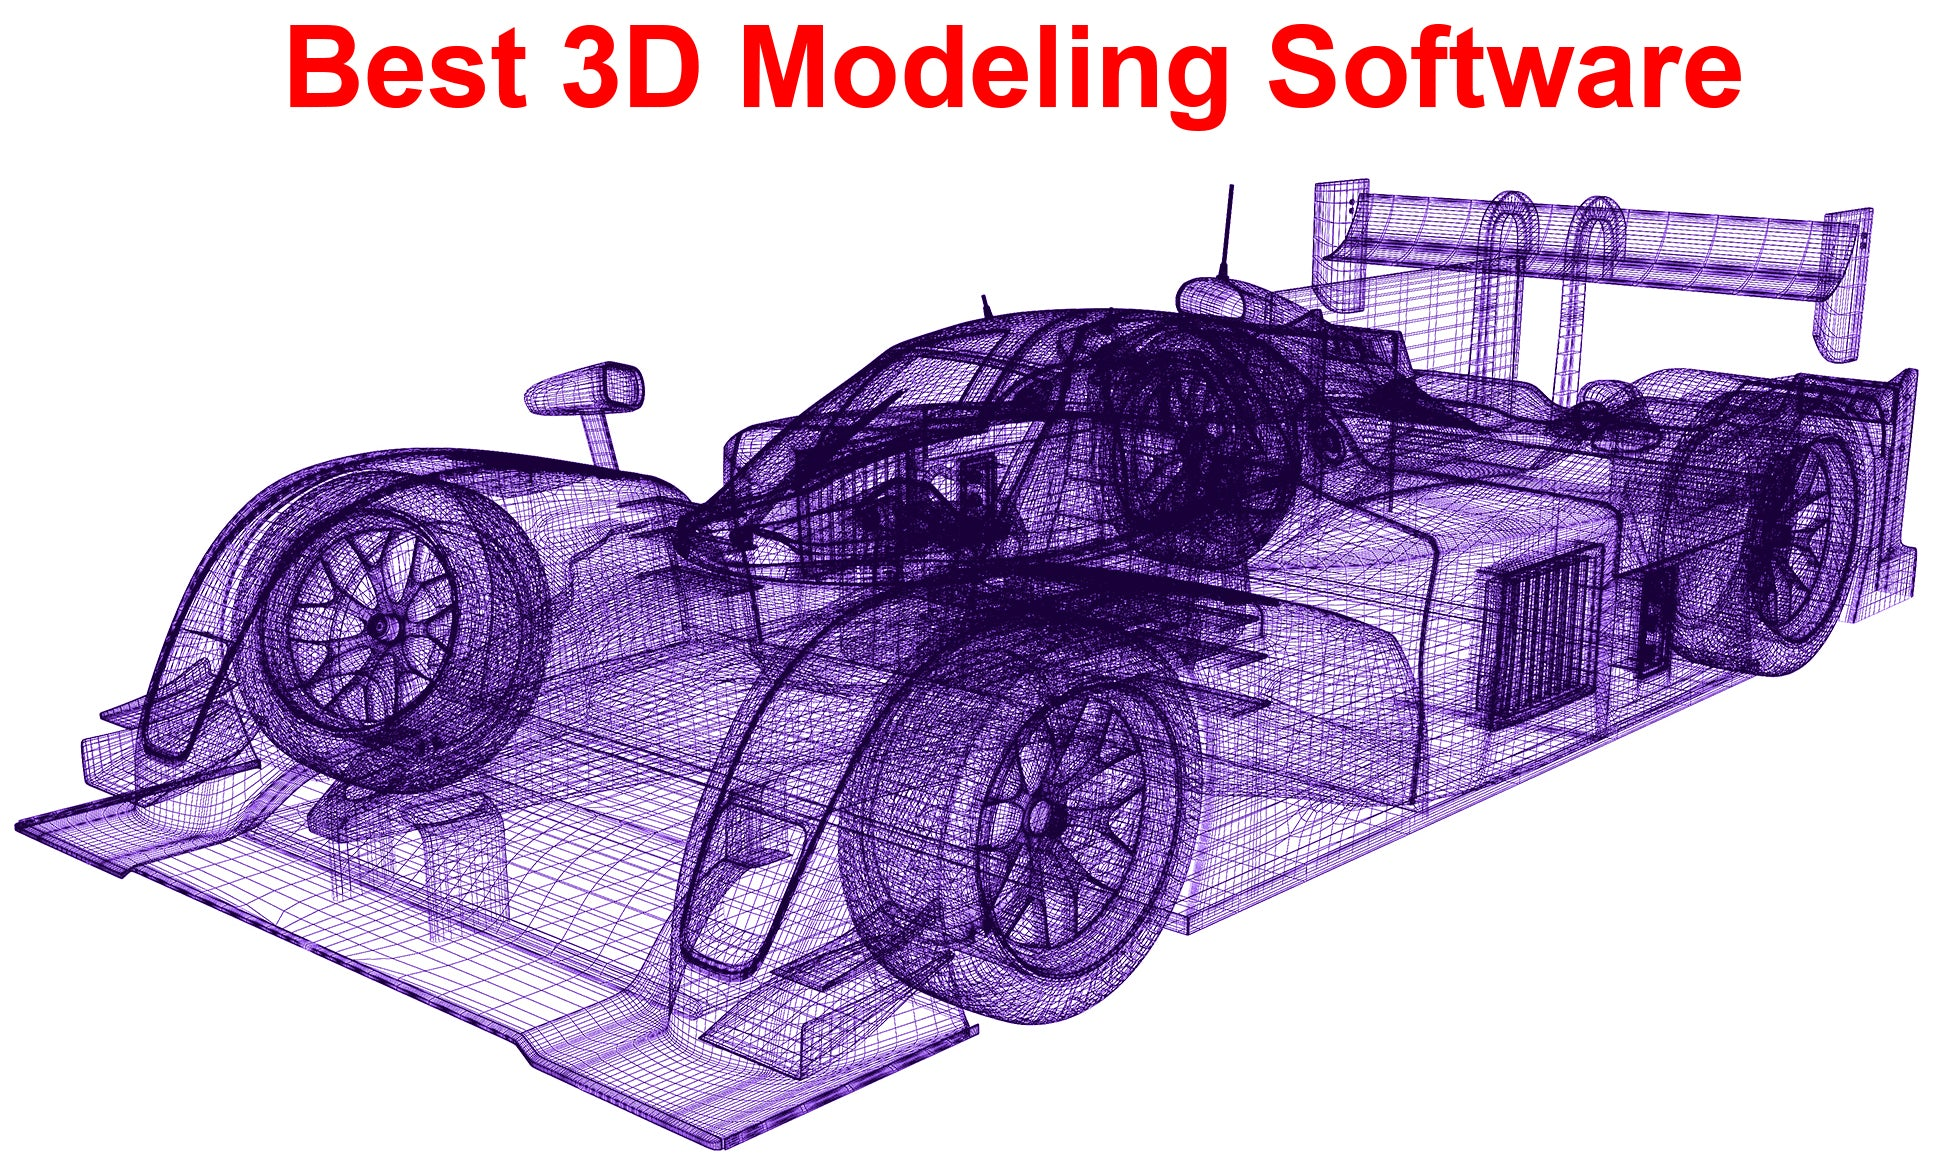 Best 3D Modeling Software